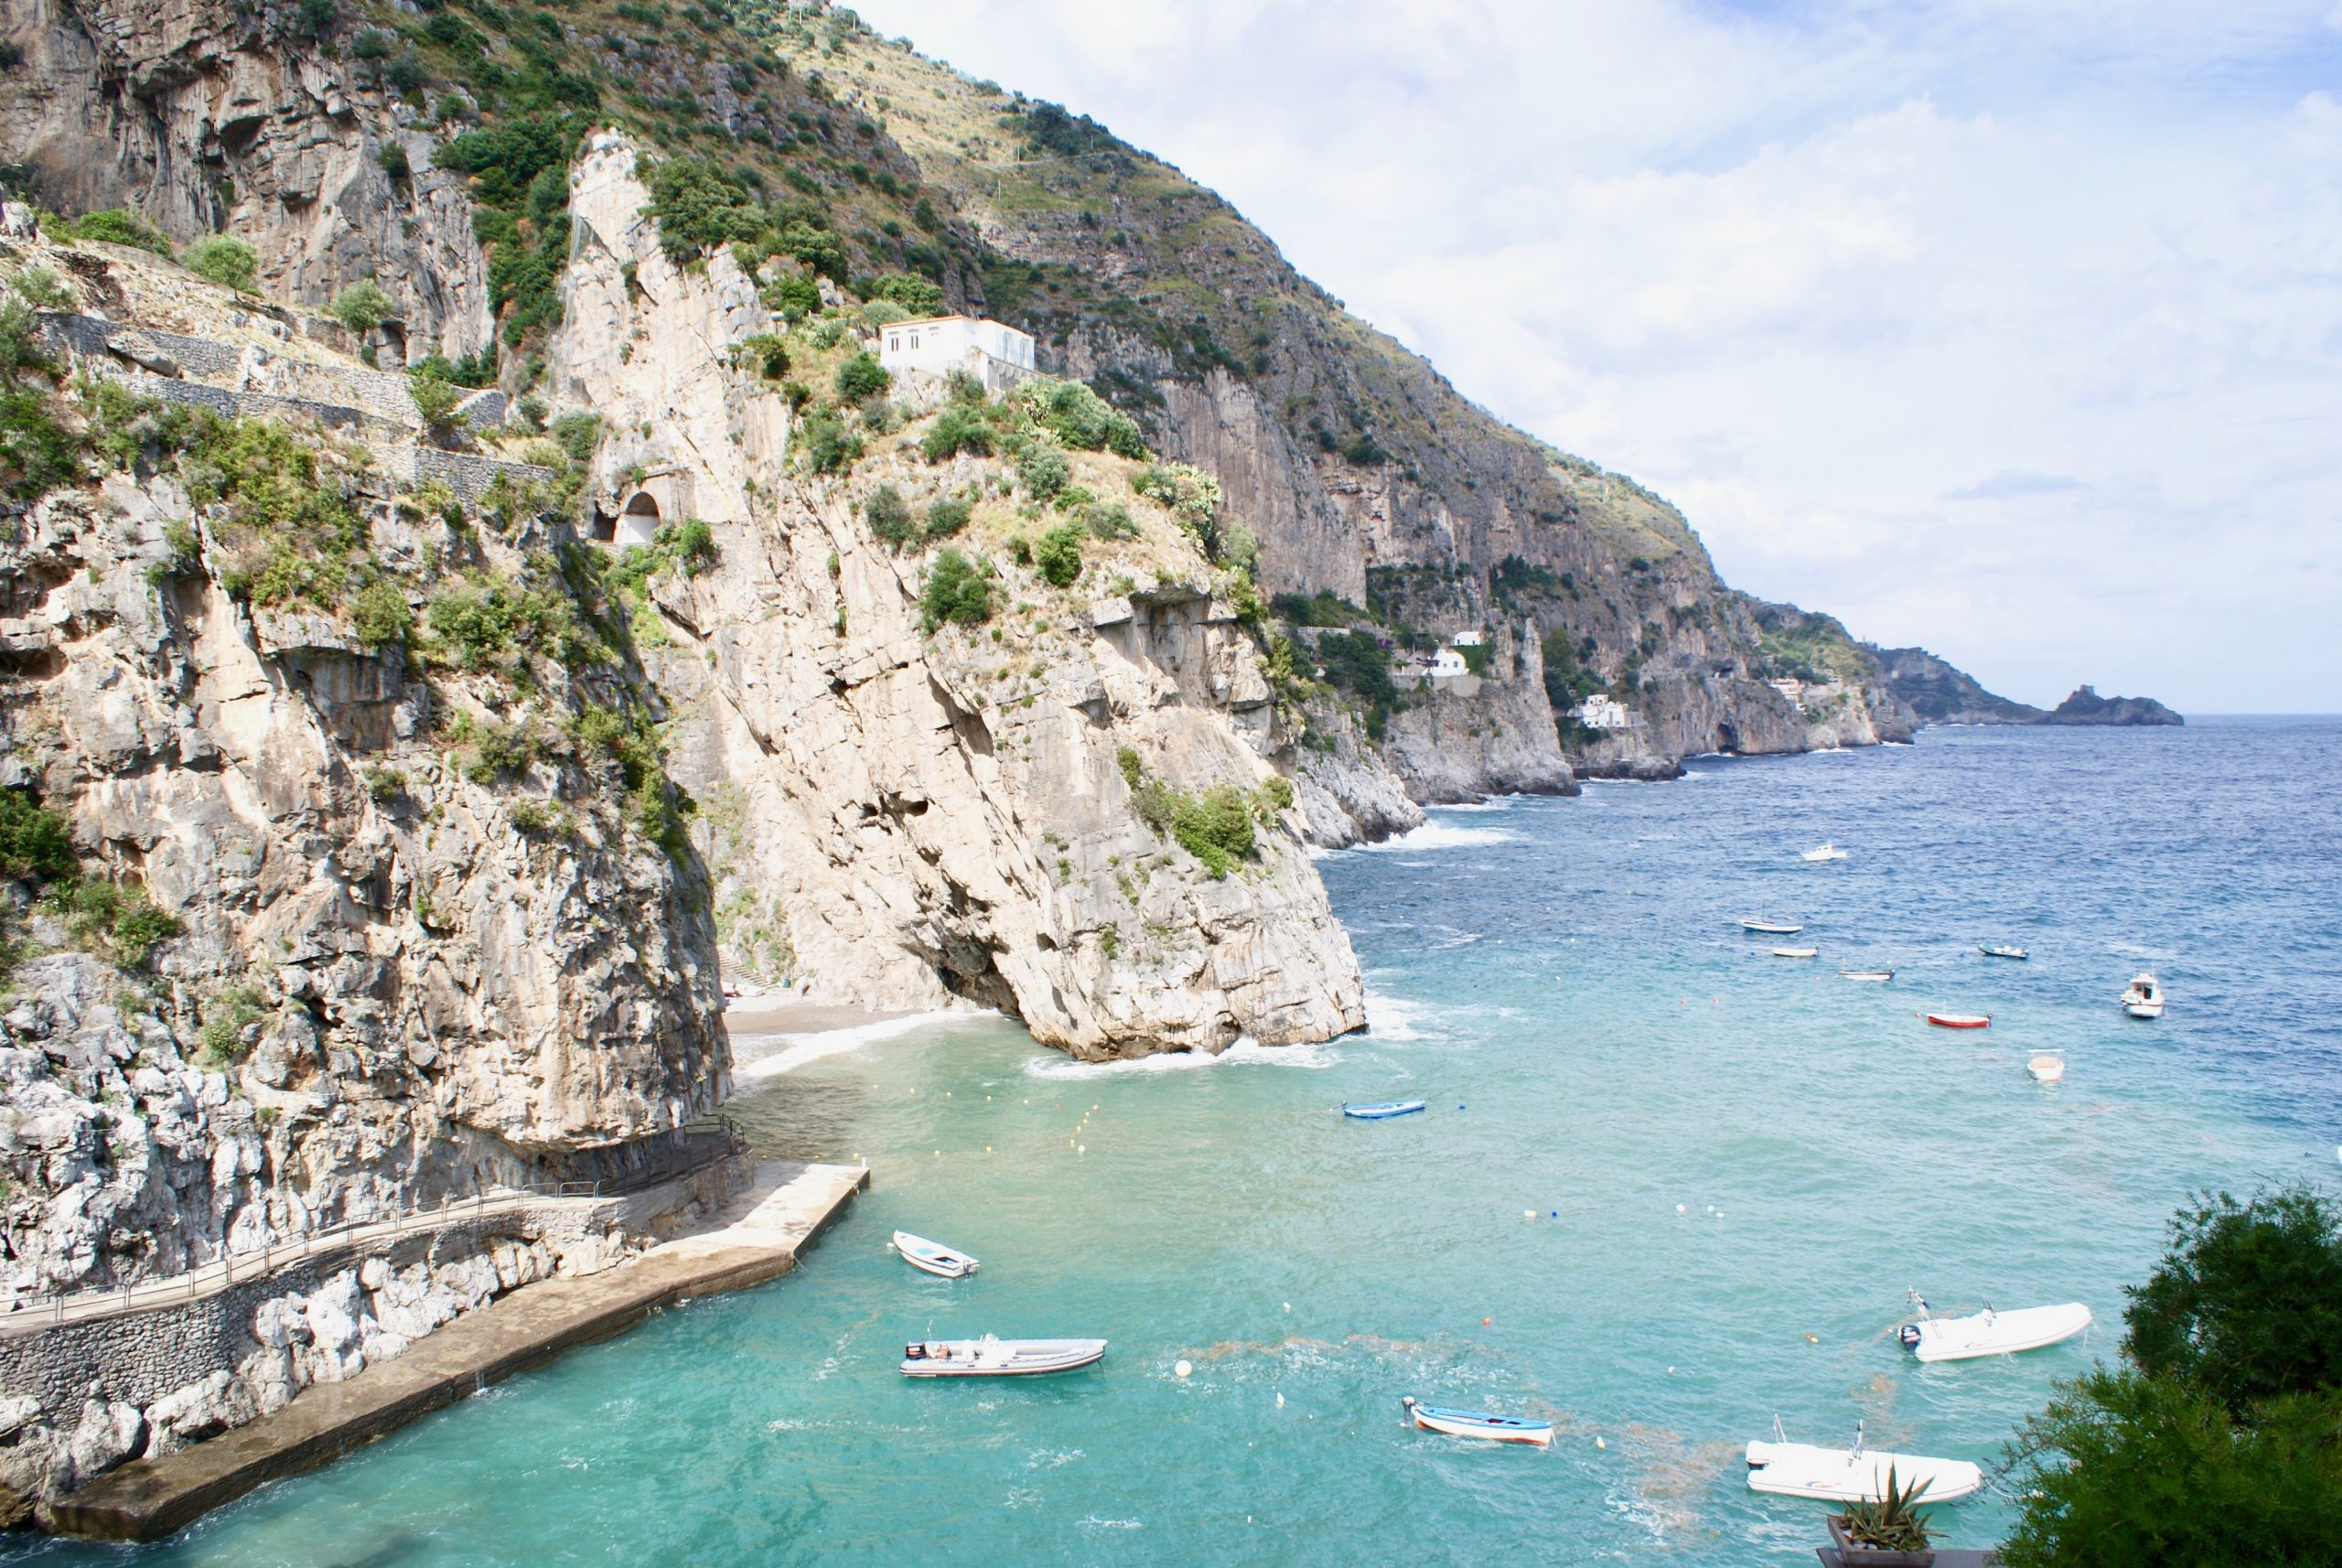 The Amalfi Coast of Italy, taken looking south across blue ocean waters